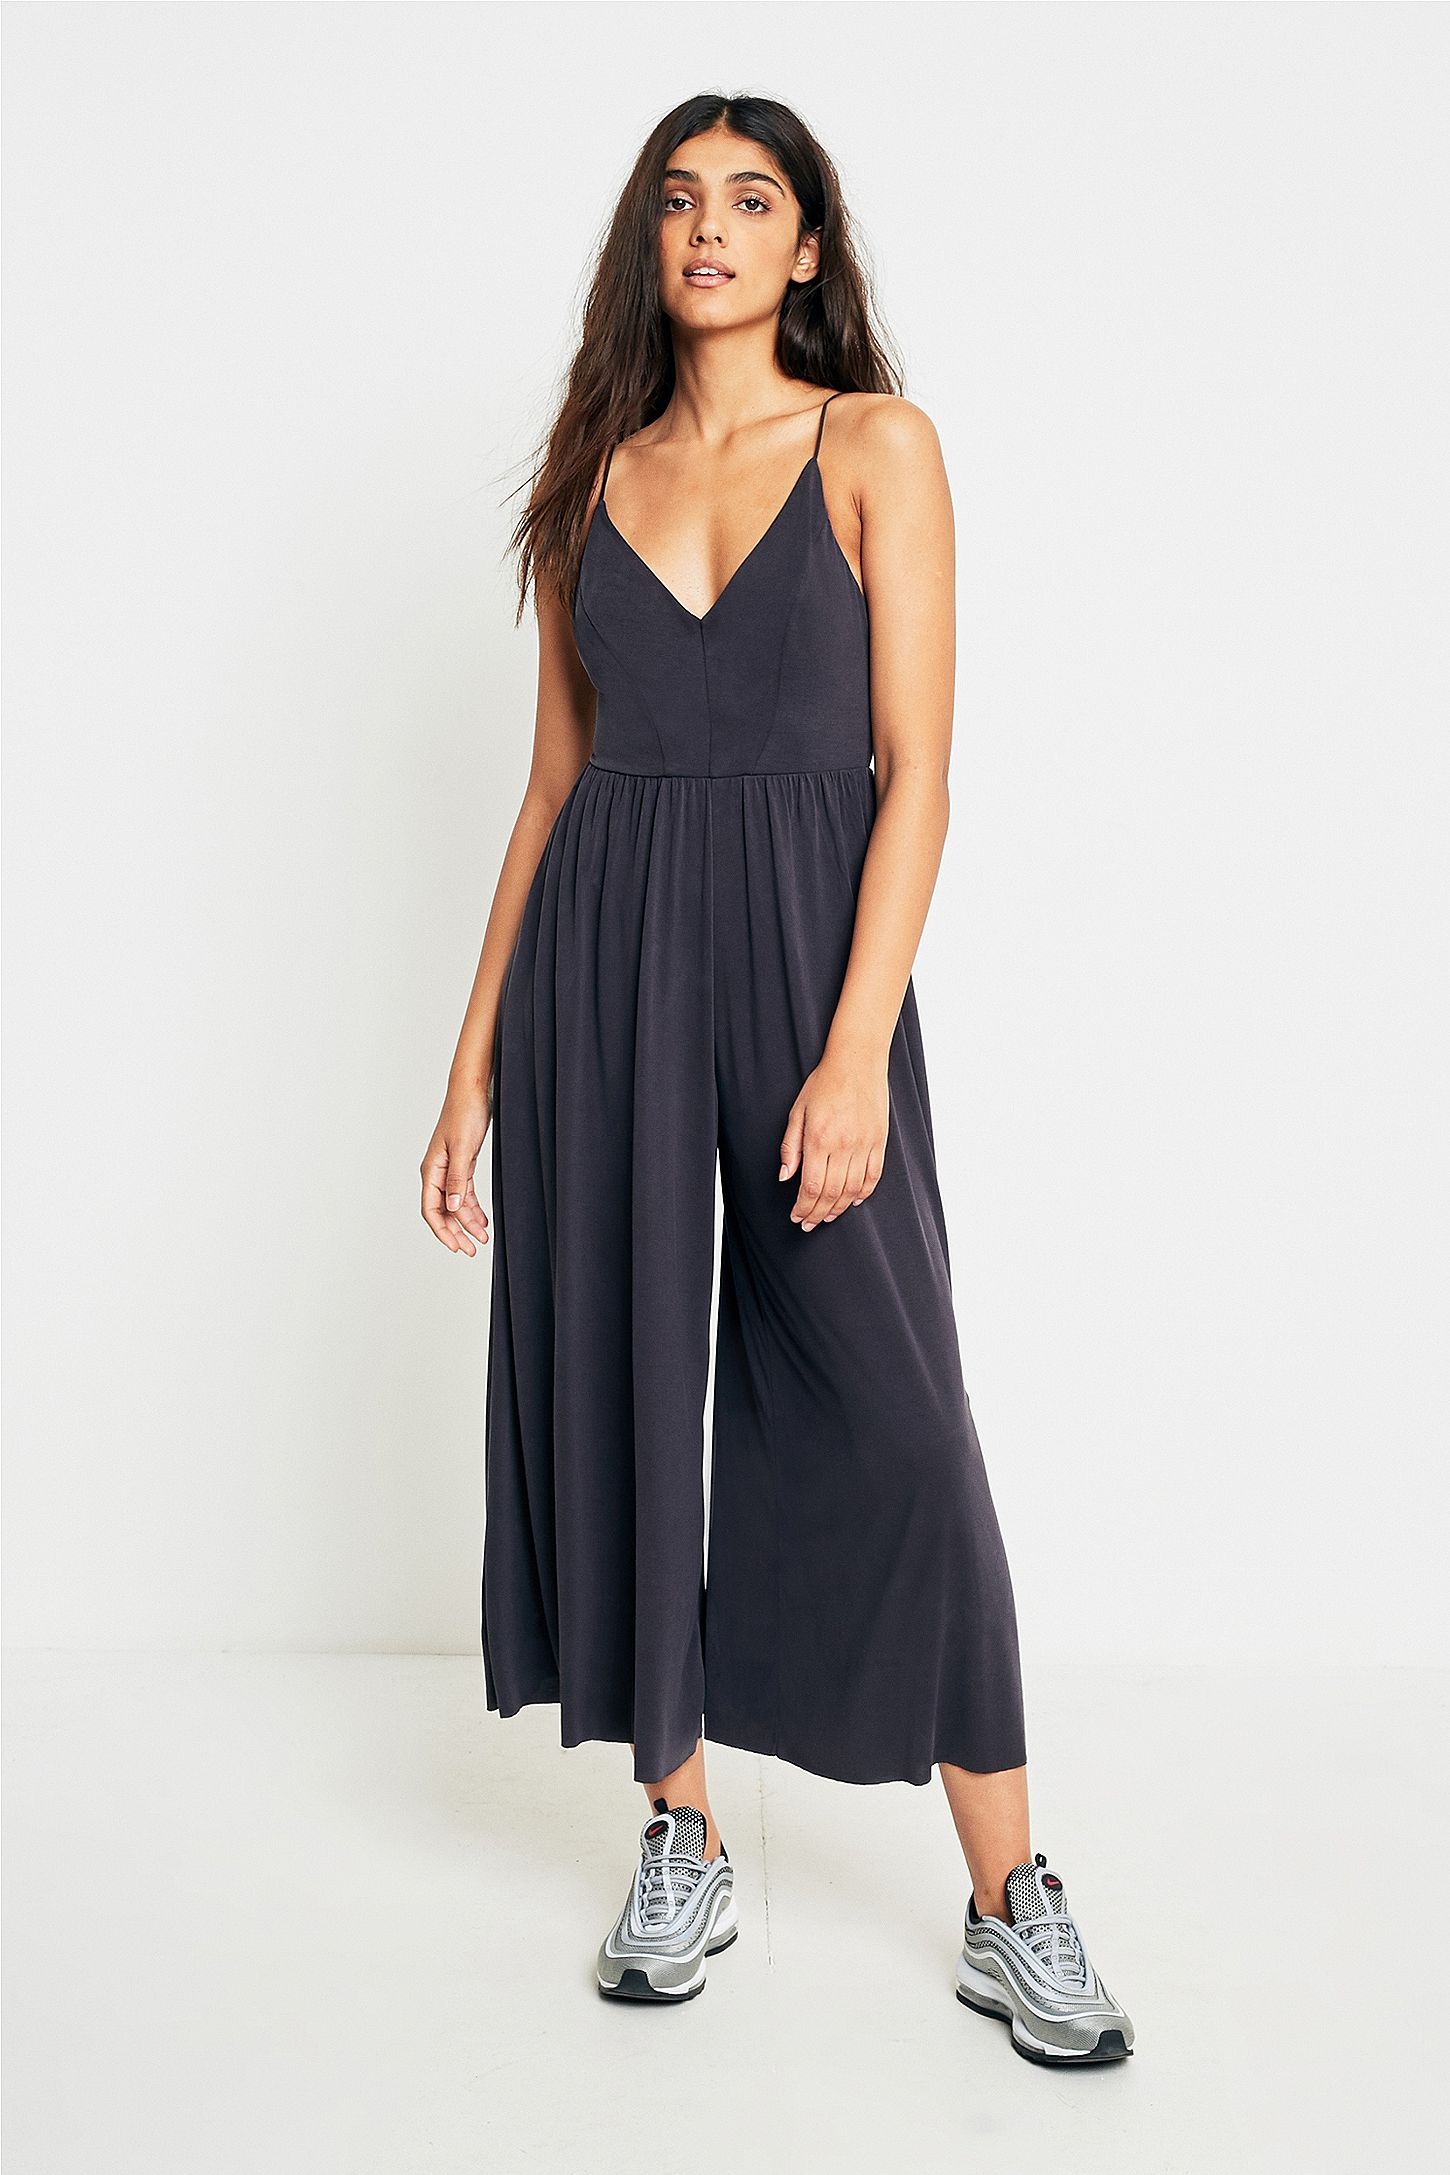 cec30543efb8 Silence + Noise Molly Cupro Culottes Jumpsuit